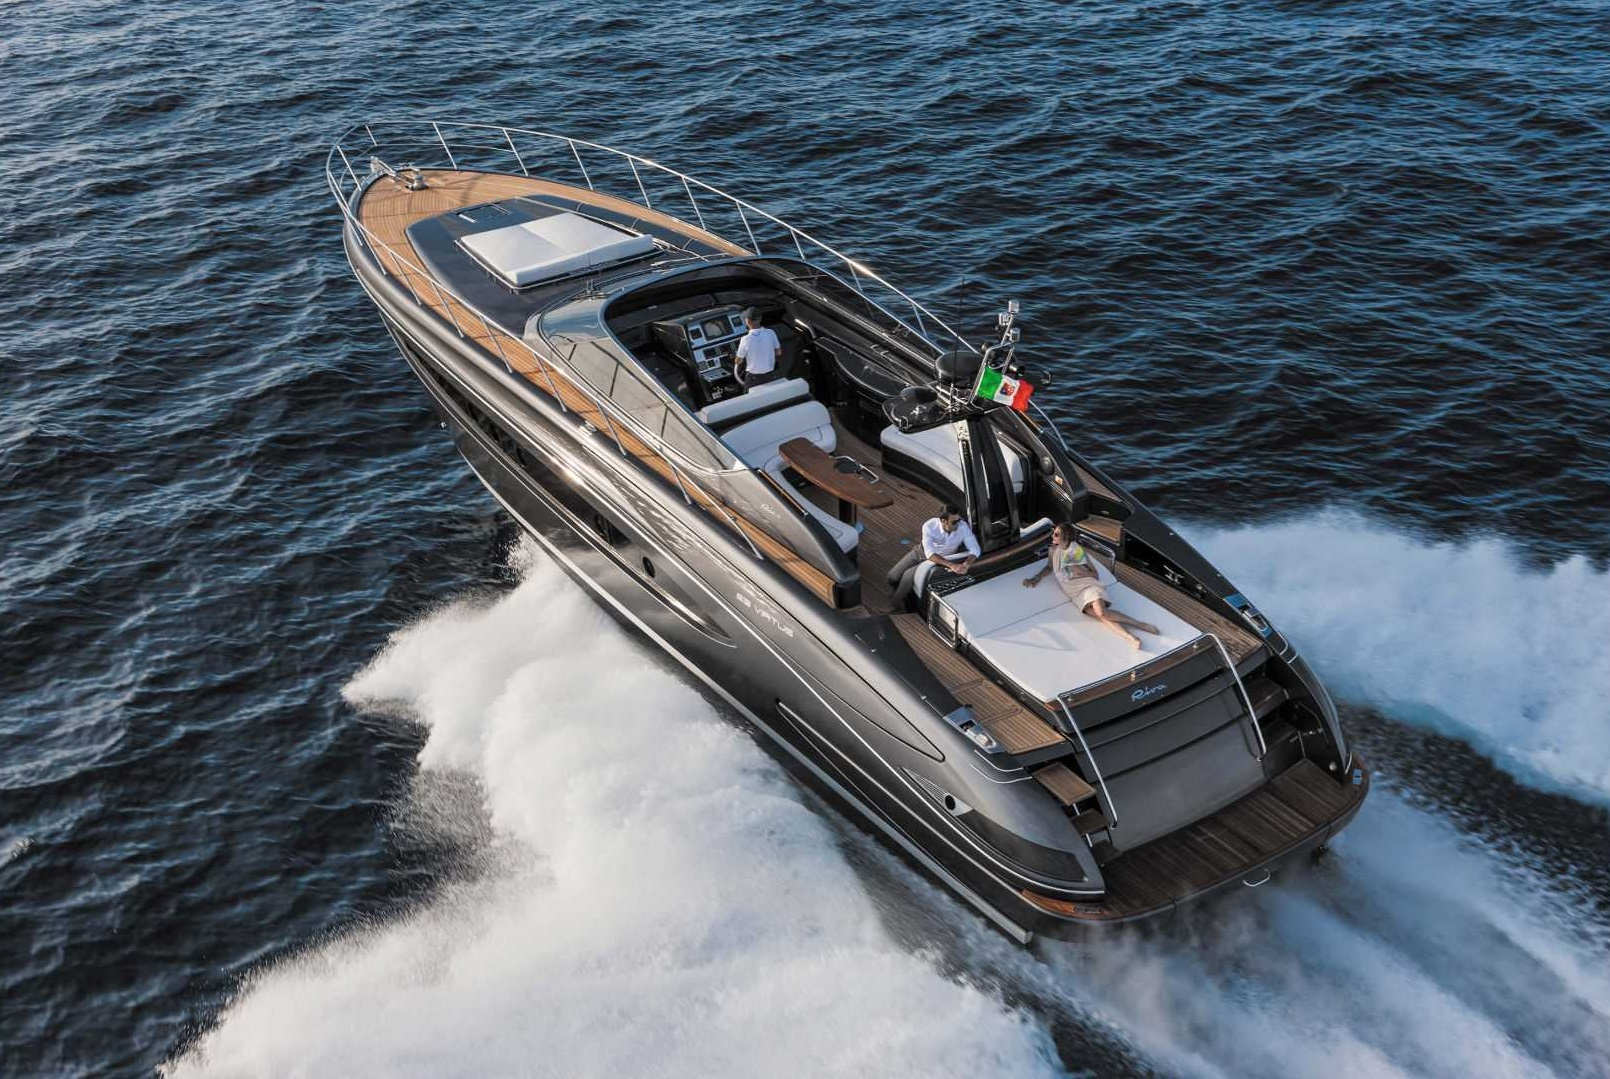 2016 Riva 63 Virtus Luxury Performance Yach for sale in California